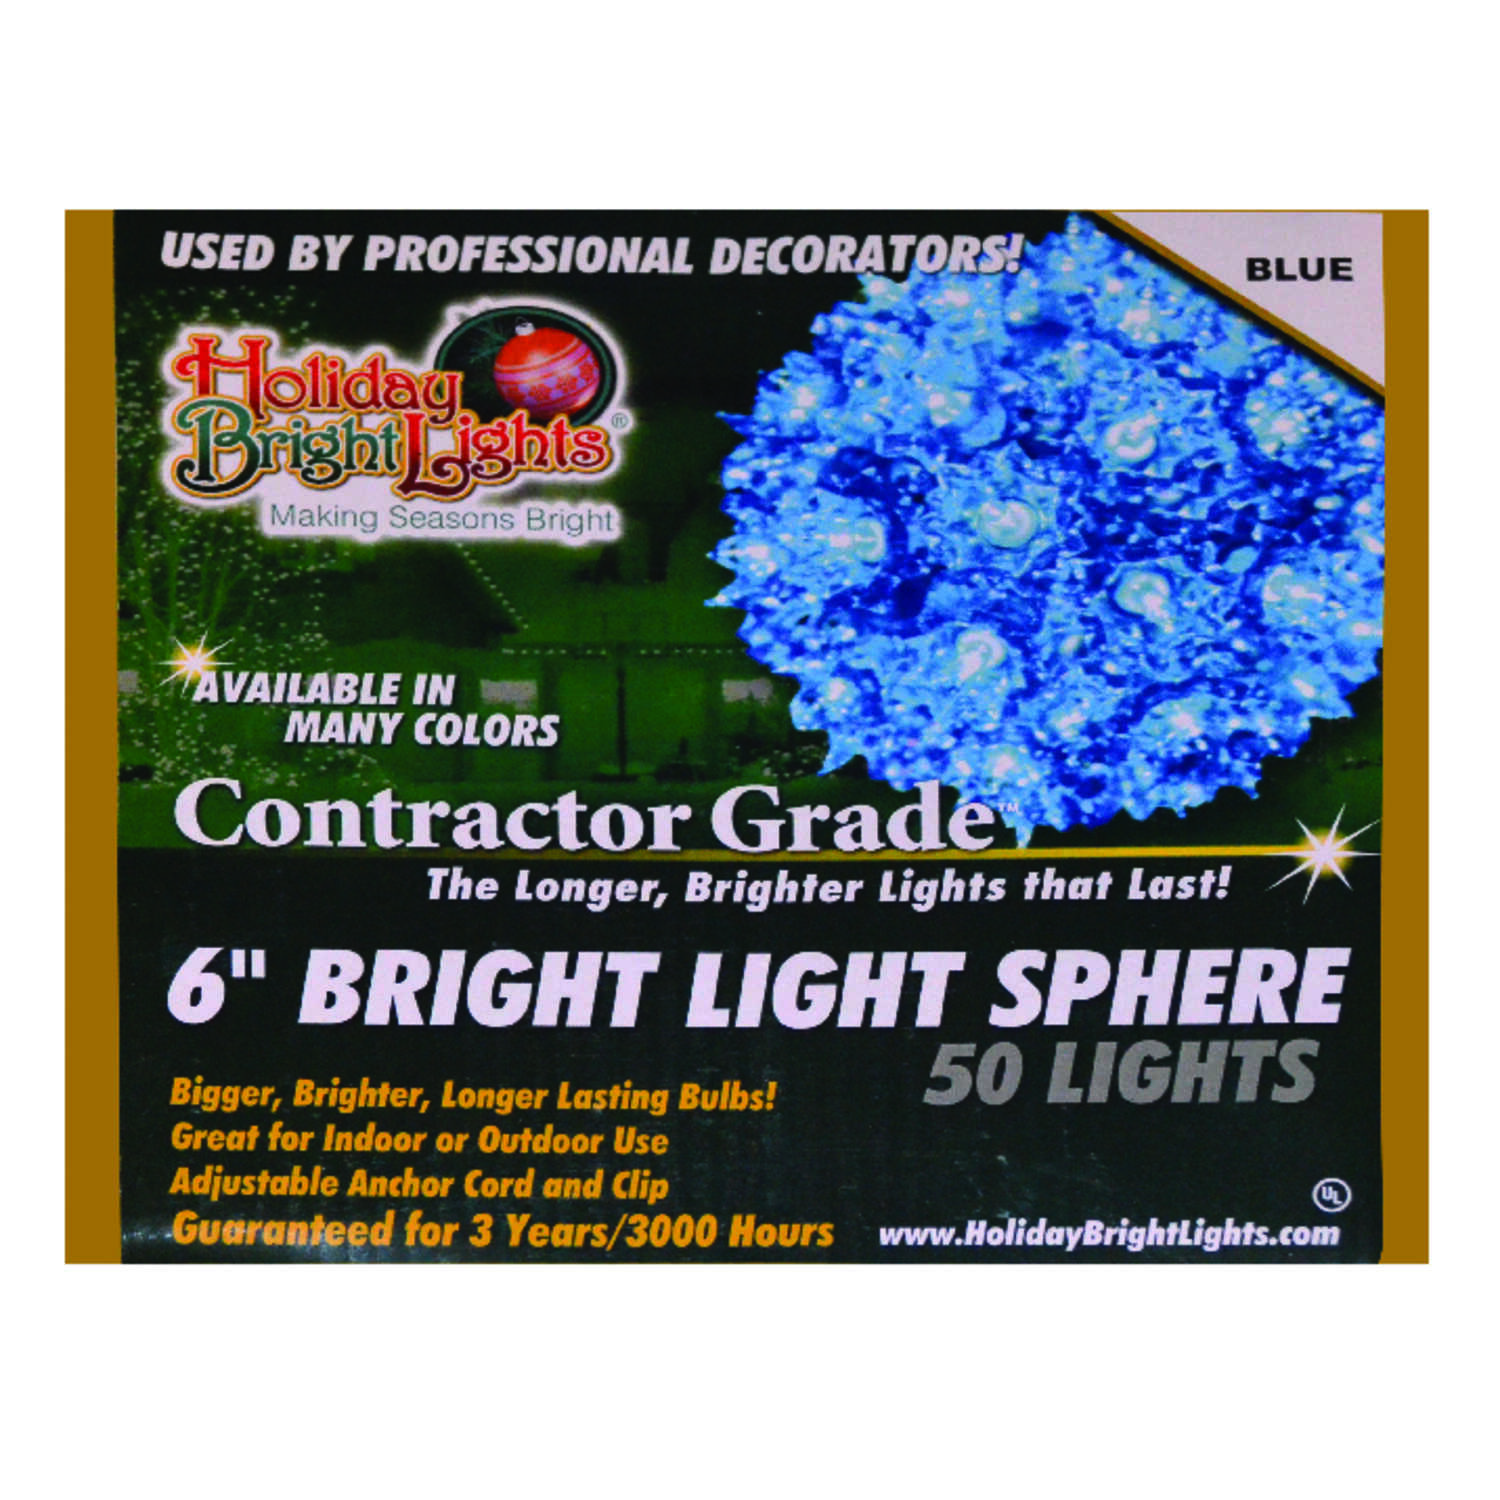 Holiday Bright Lights  Incandescent  Contractor  Sphere Light  Blue  12 ft. 50 lights